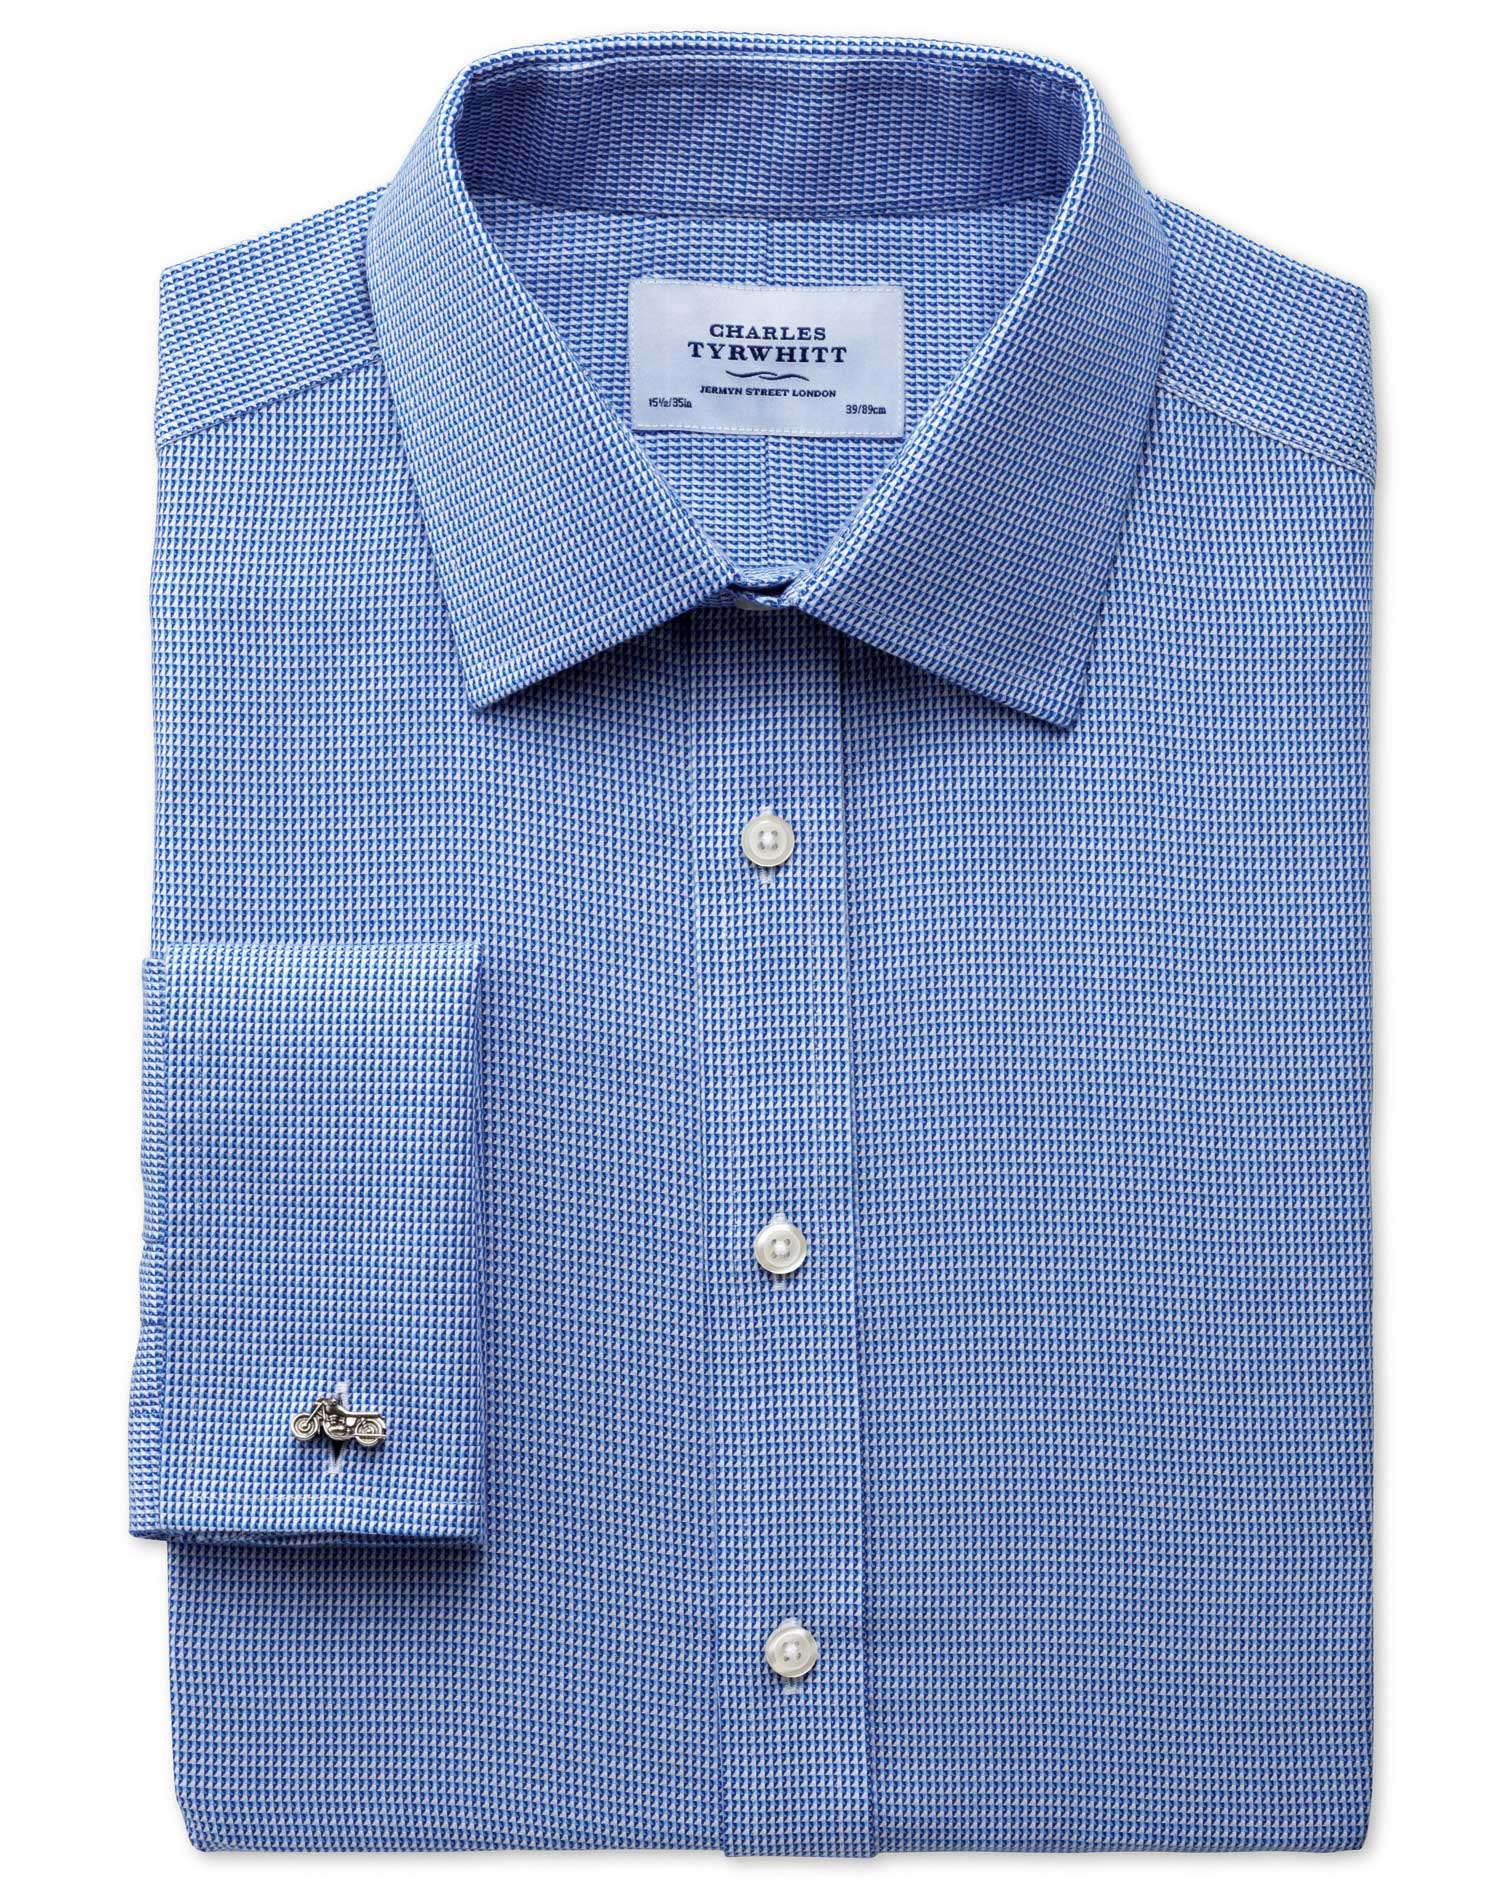 Classic Fit Non-Iron Triangle Textured Royal Blue Cotton Formal Shirt Double Cuff Size 15.5/37 by Ch